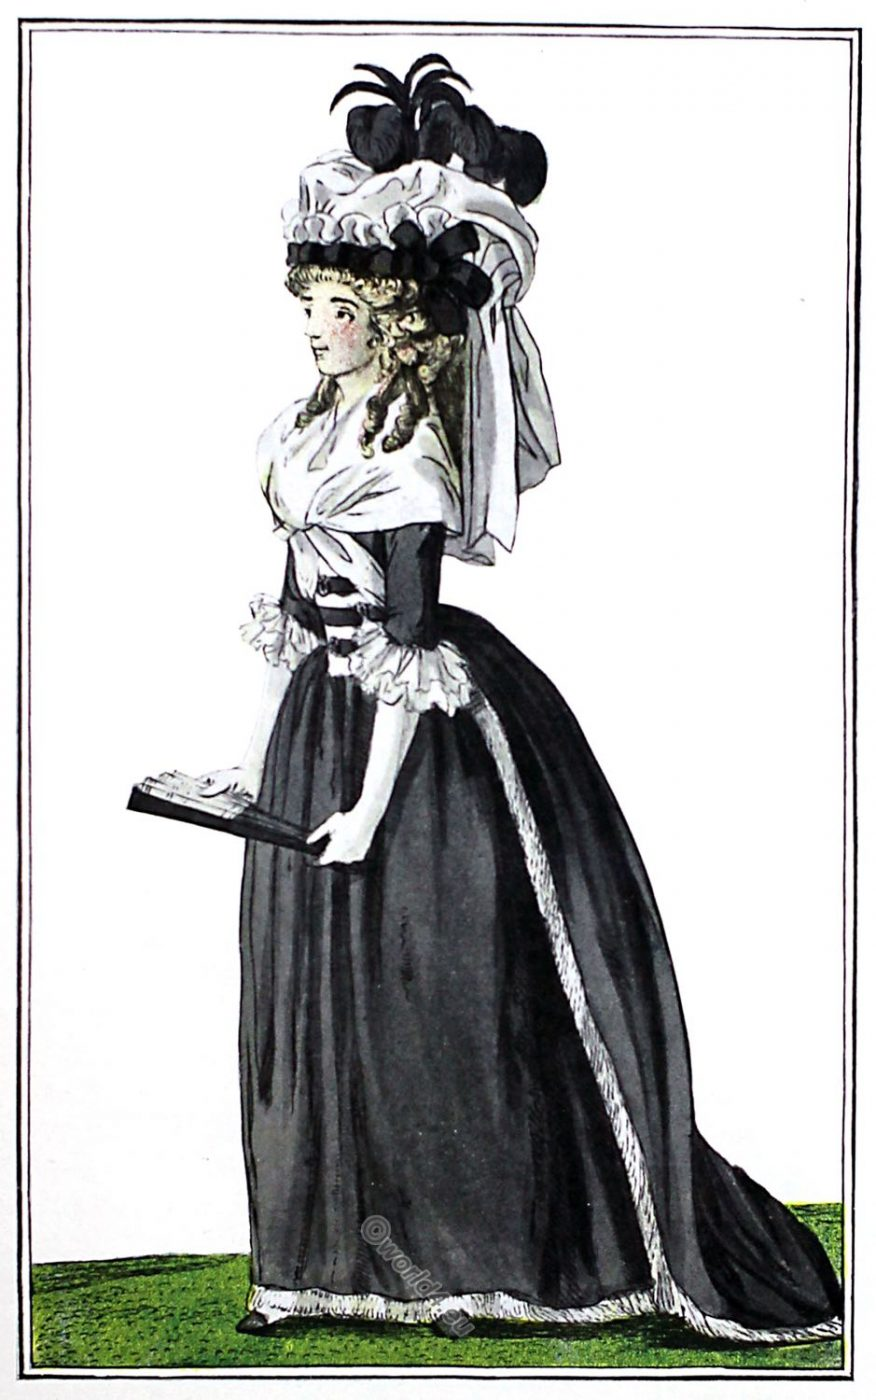 fashion, costume, french, revolution, dress, clothing,